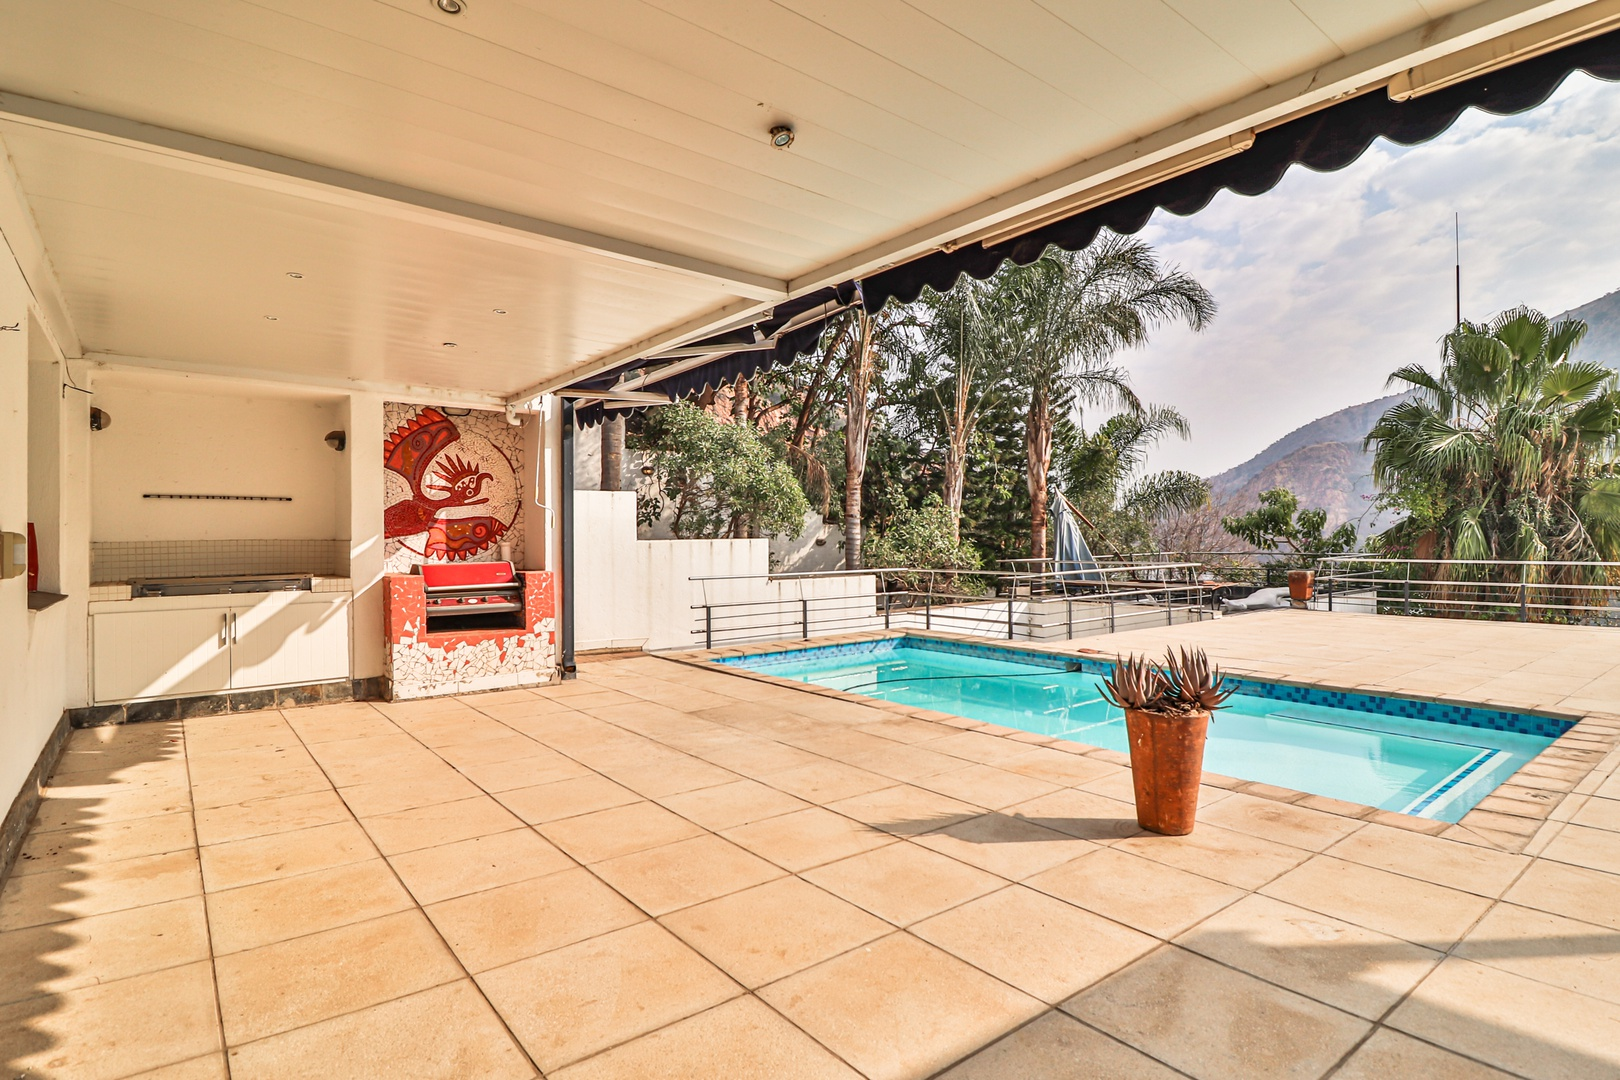 House in Kosmos Village - Living area opens on to pool deck with amazing views!